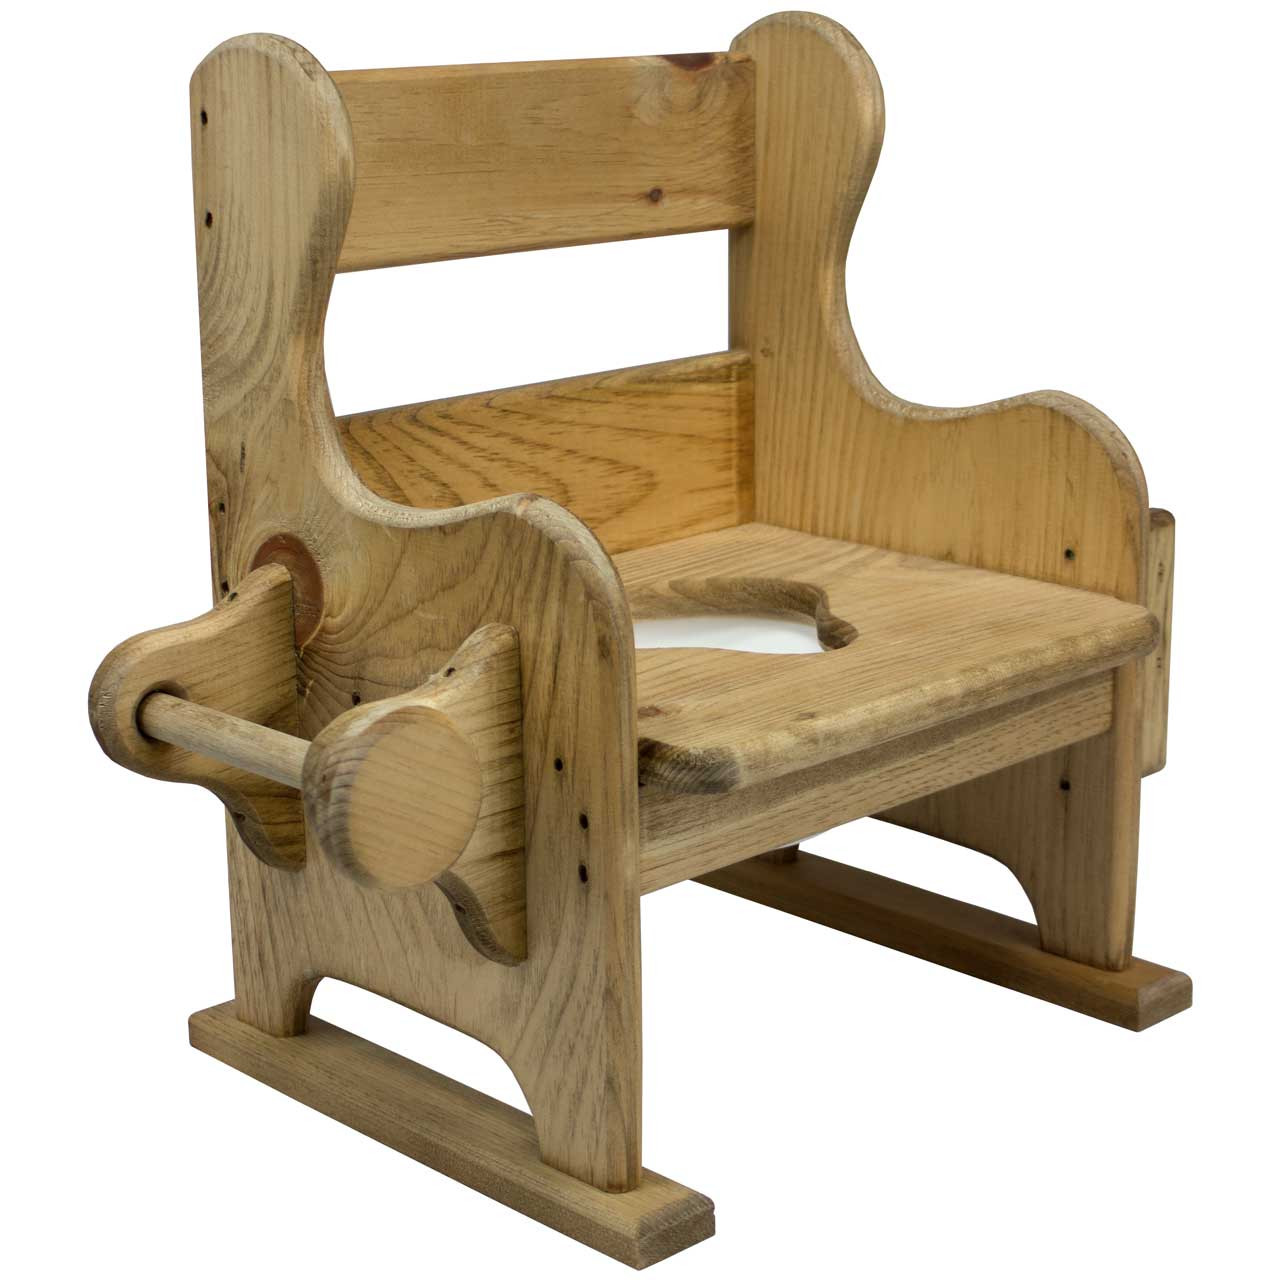 potty chairs for larger toddlers swivel chair on carpet wooden original baby shower gifts